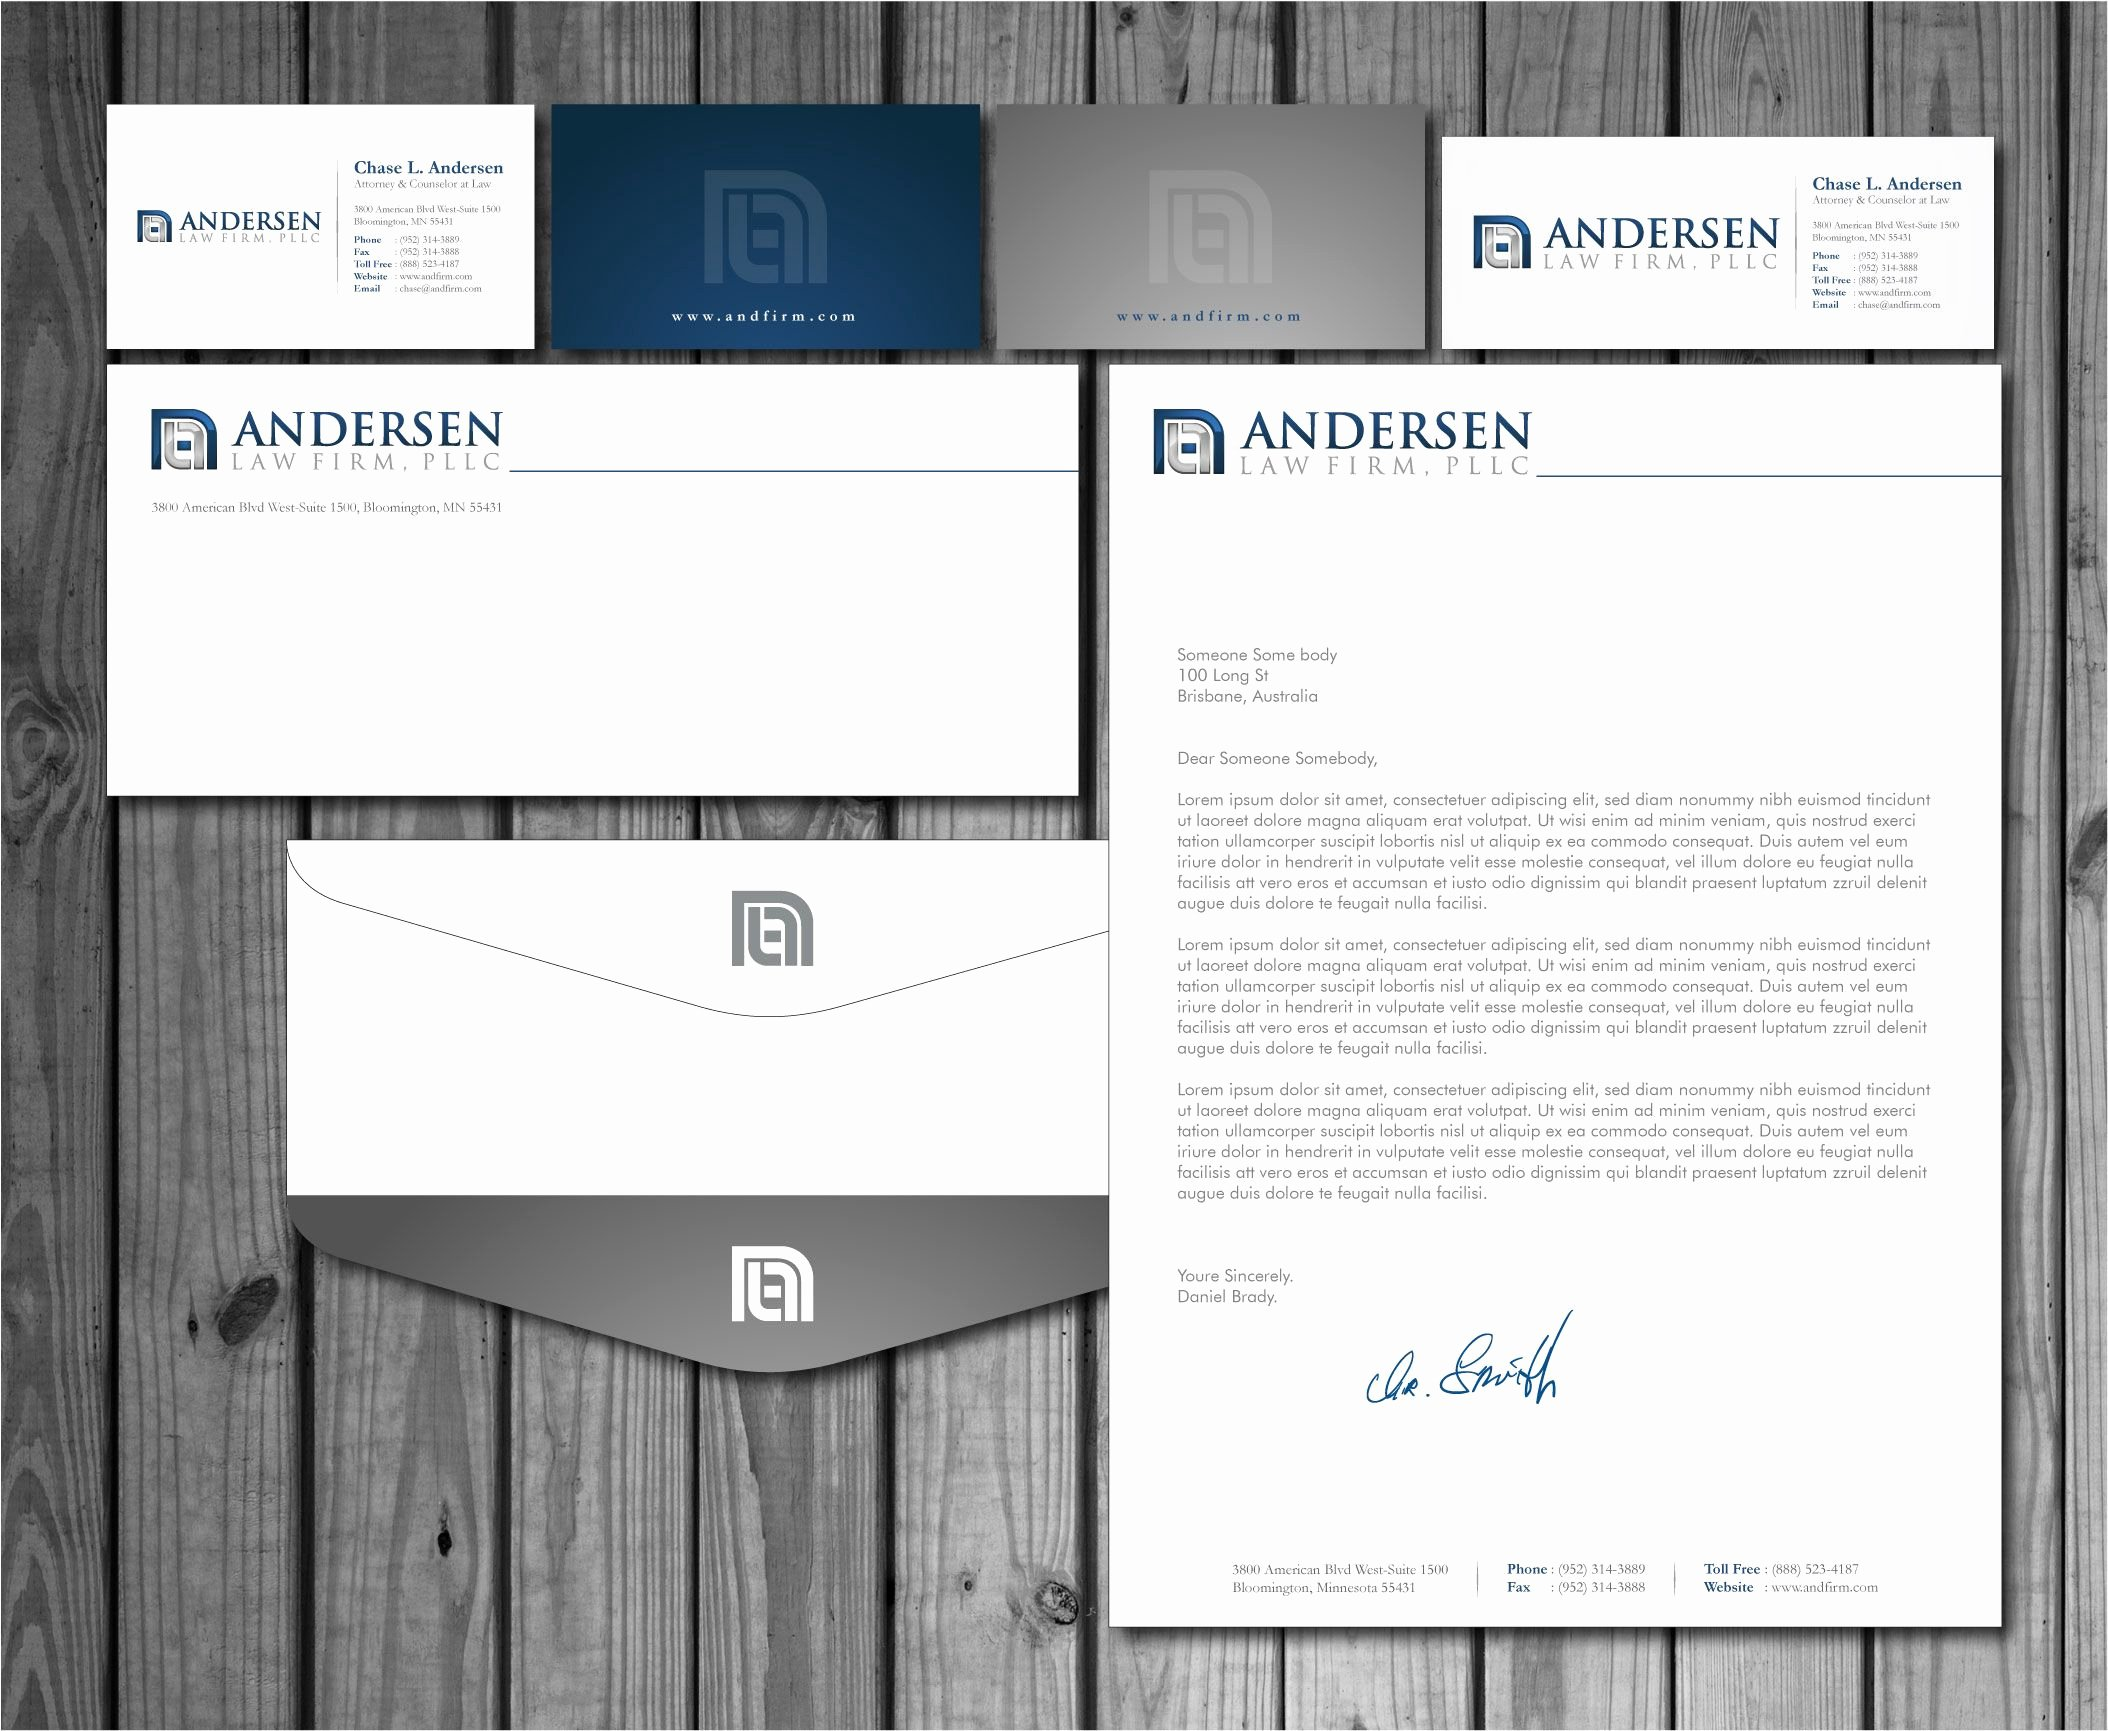 Law Firm Letterhead Template Inspirational Check Out This Design for andersen Law Firm Pllc Business